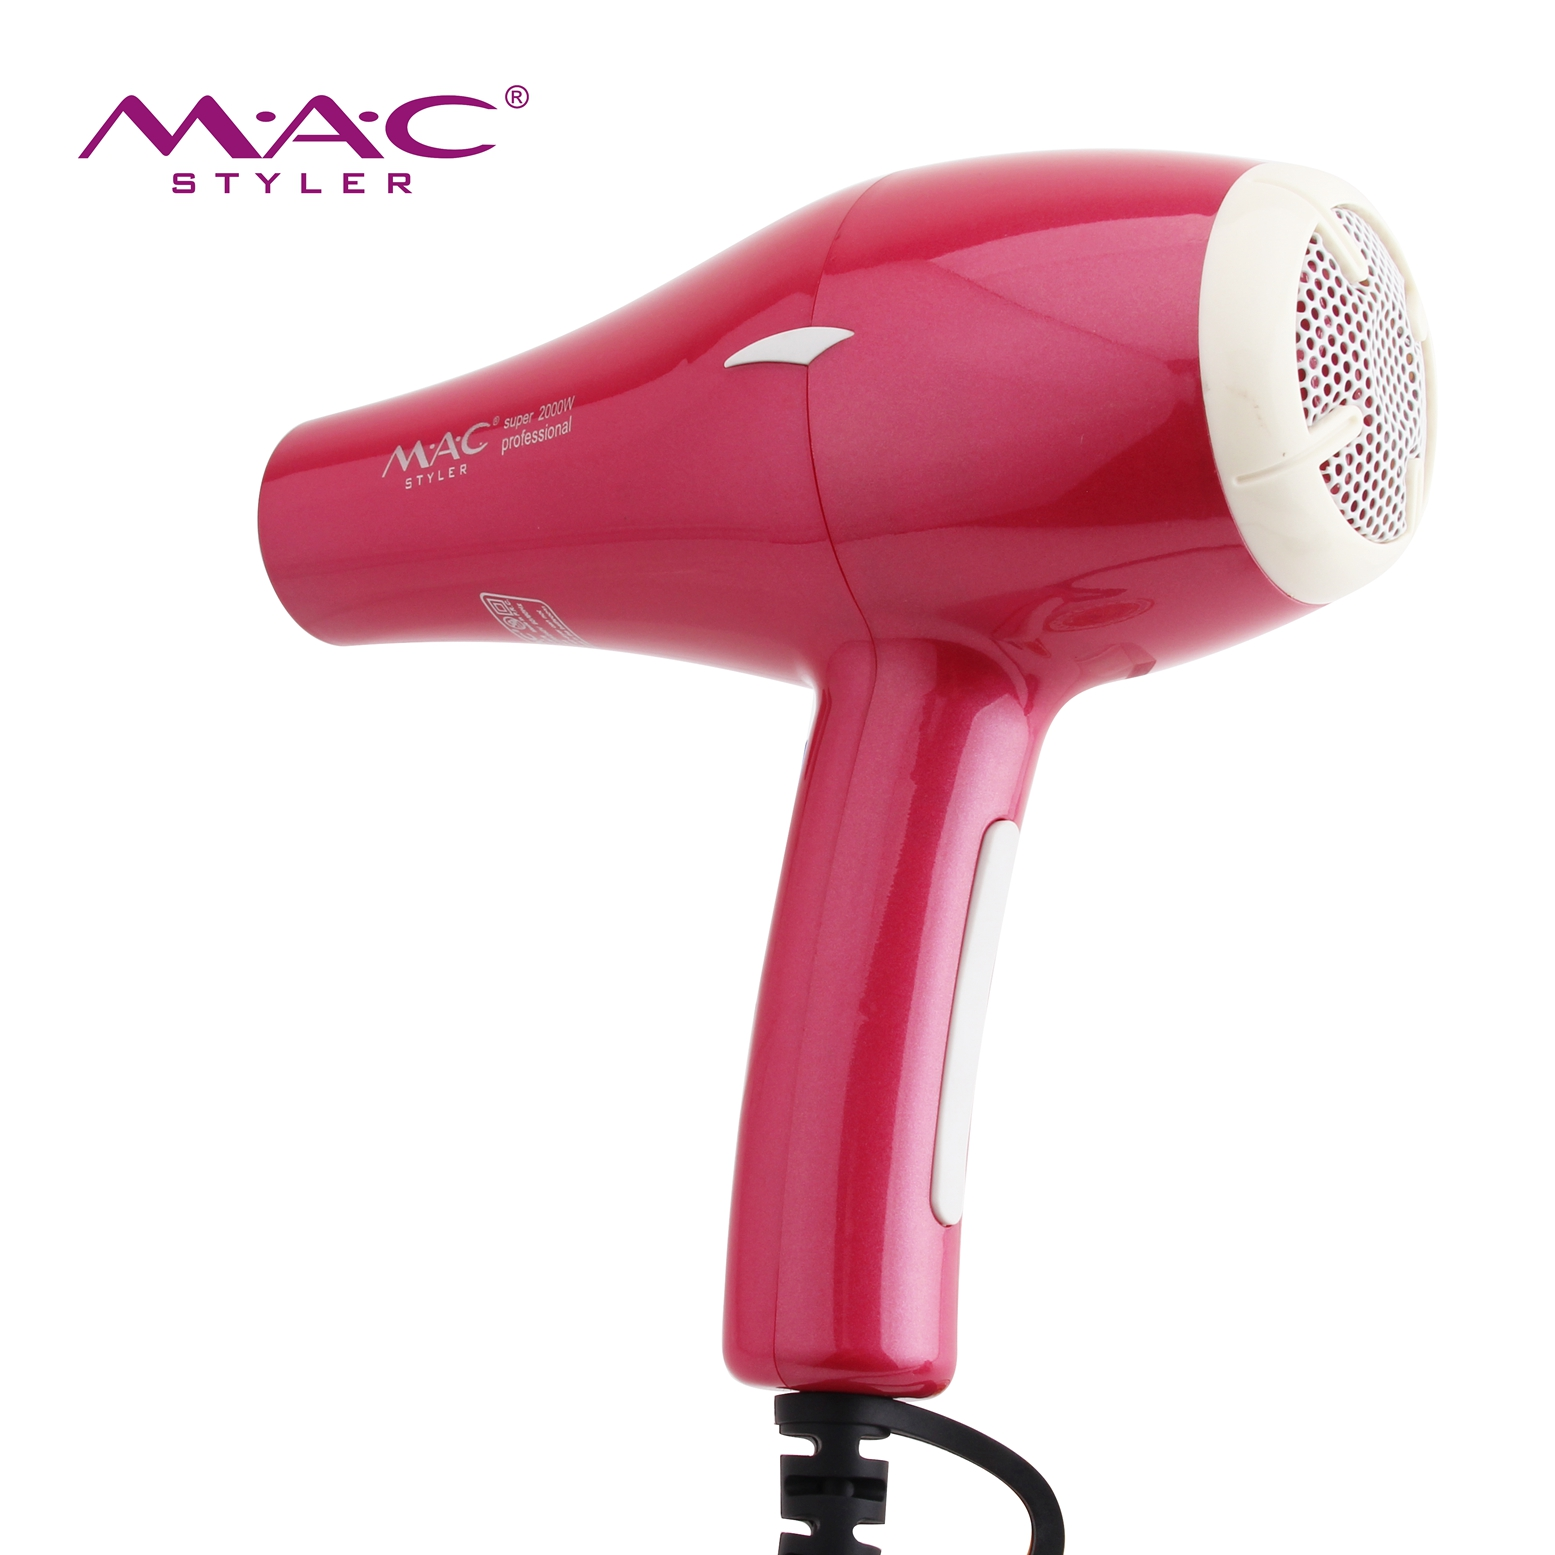 Hot Magic Salon Professional Hair Dryers with Concentrator Dual Voltage AC Motor Safety Hair Dryers